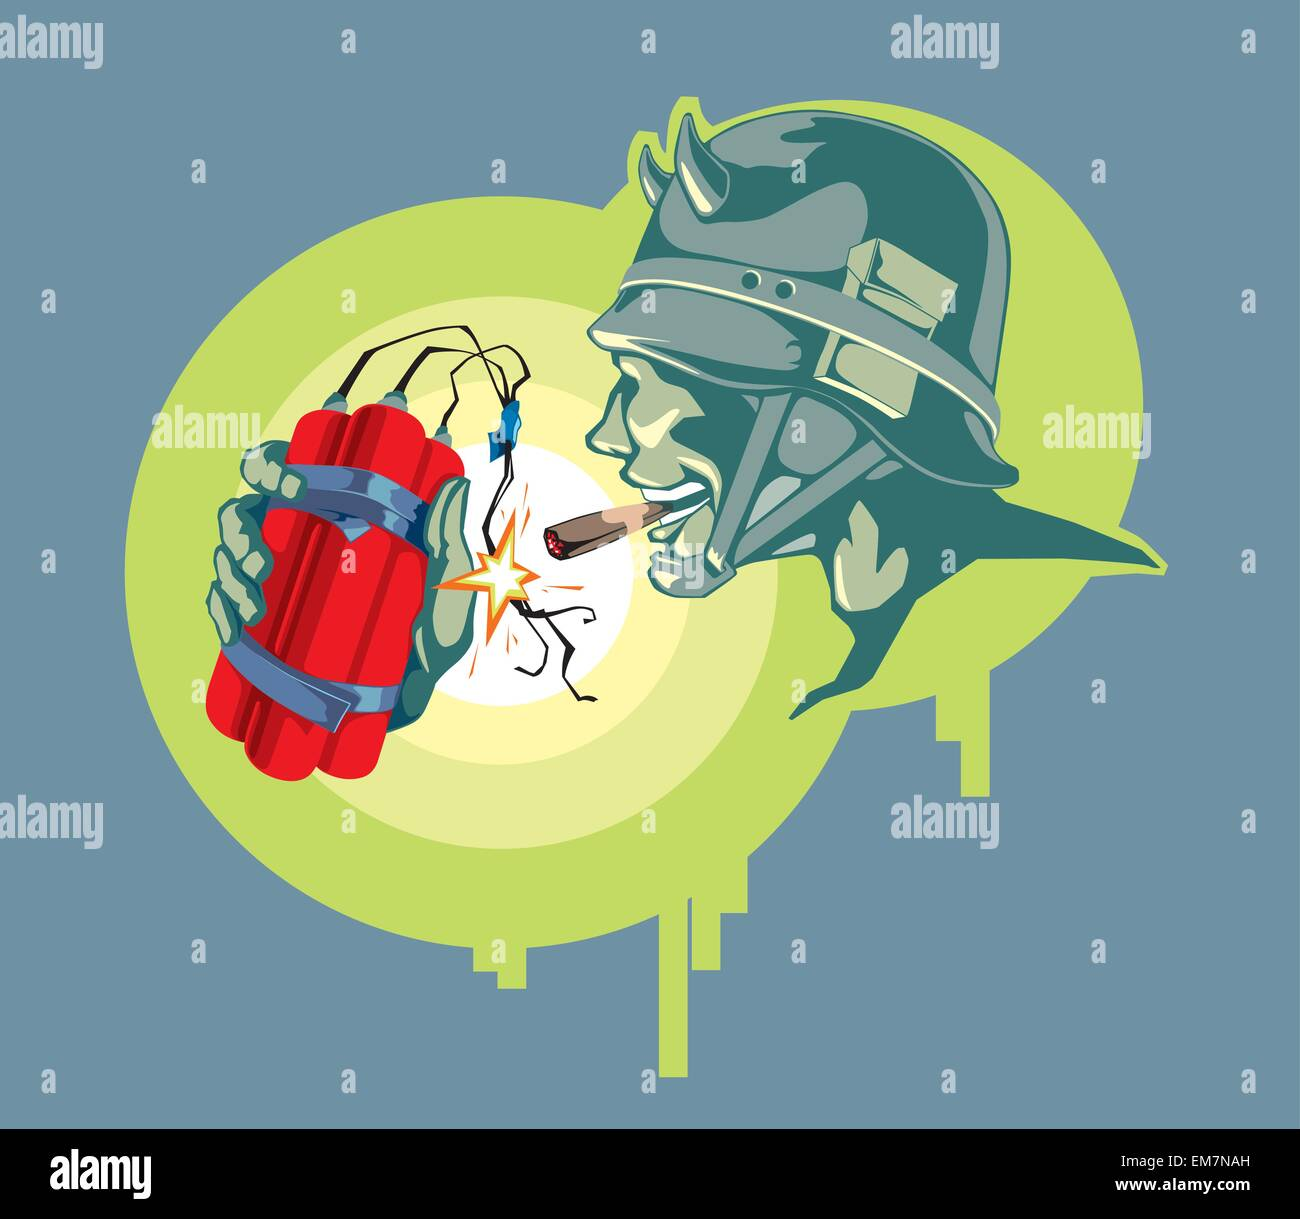 Soldier with an Explosive - Stock Vector